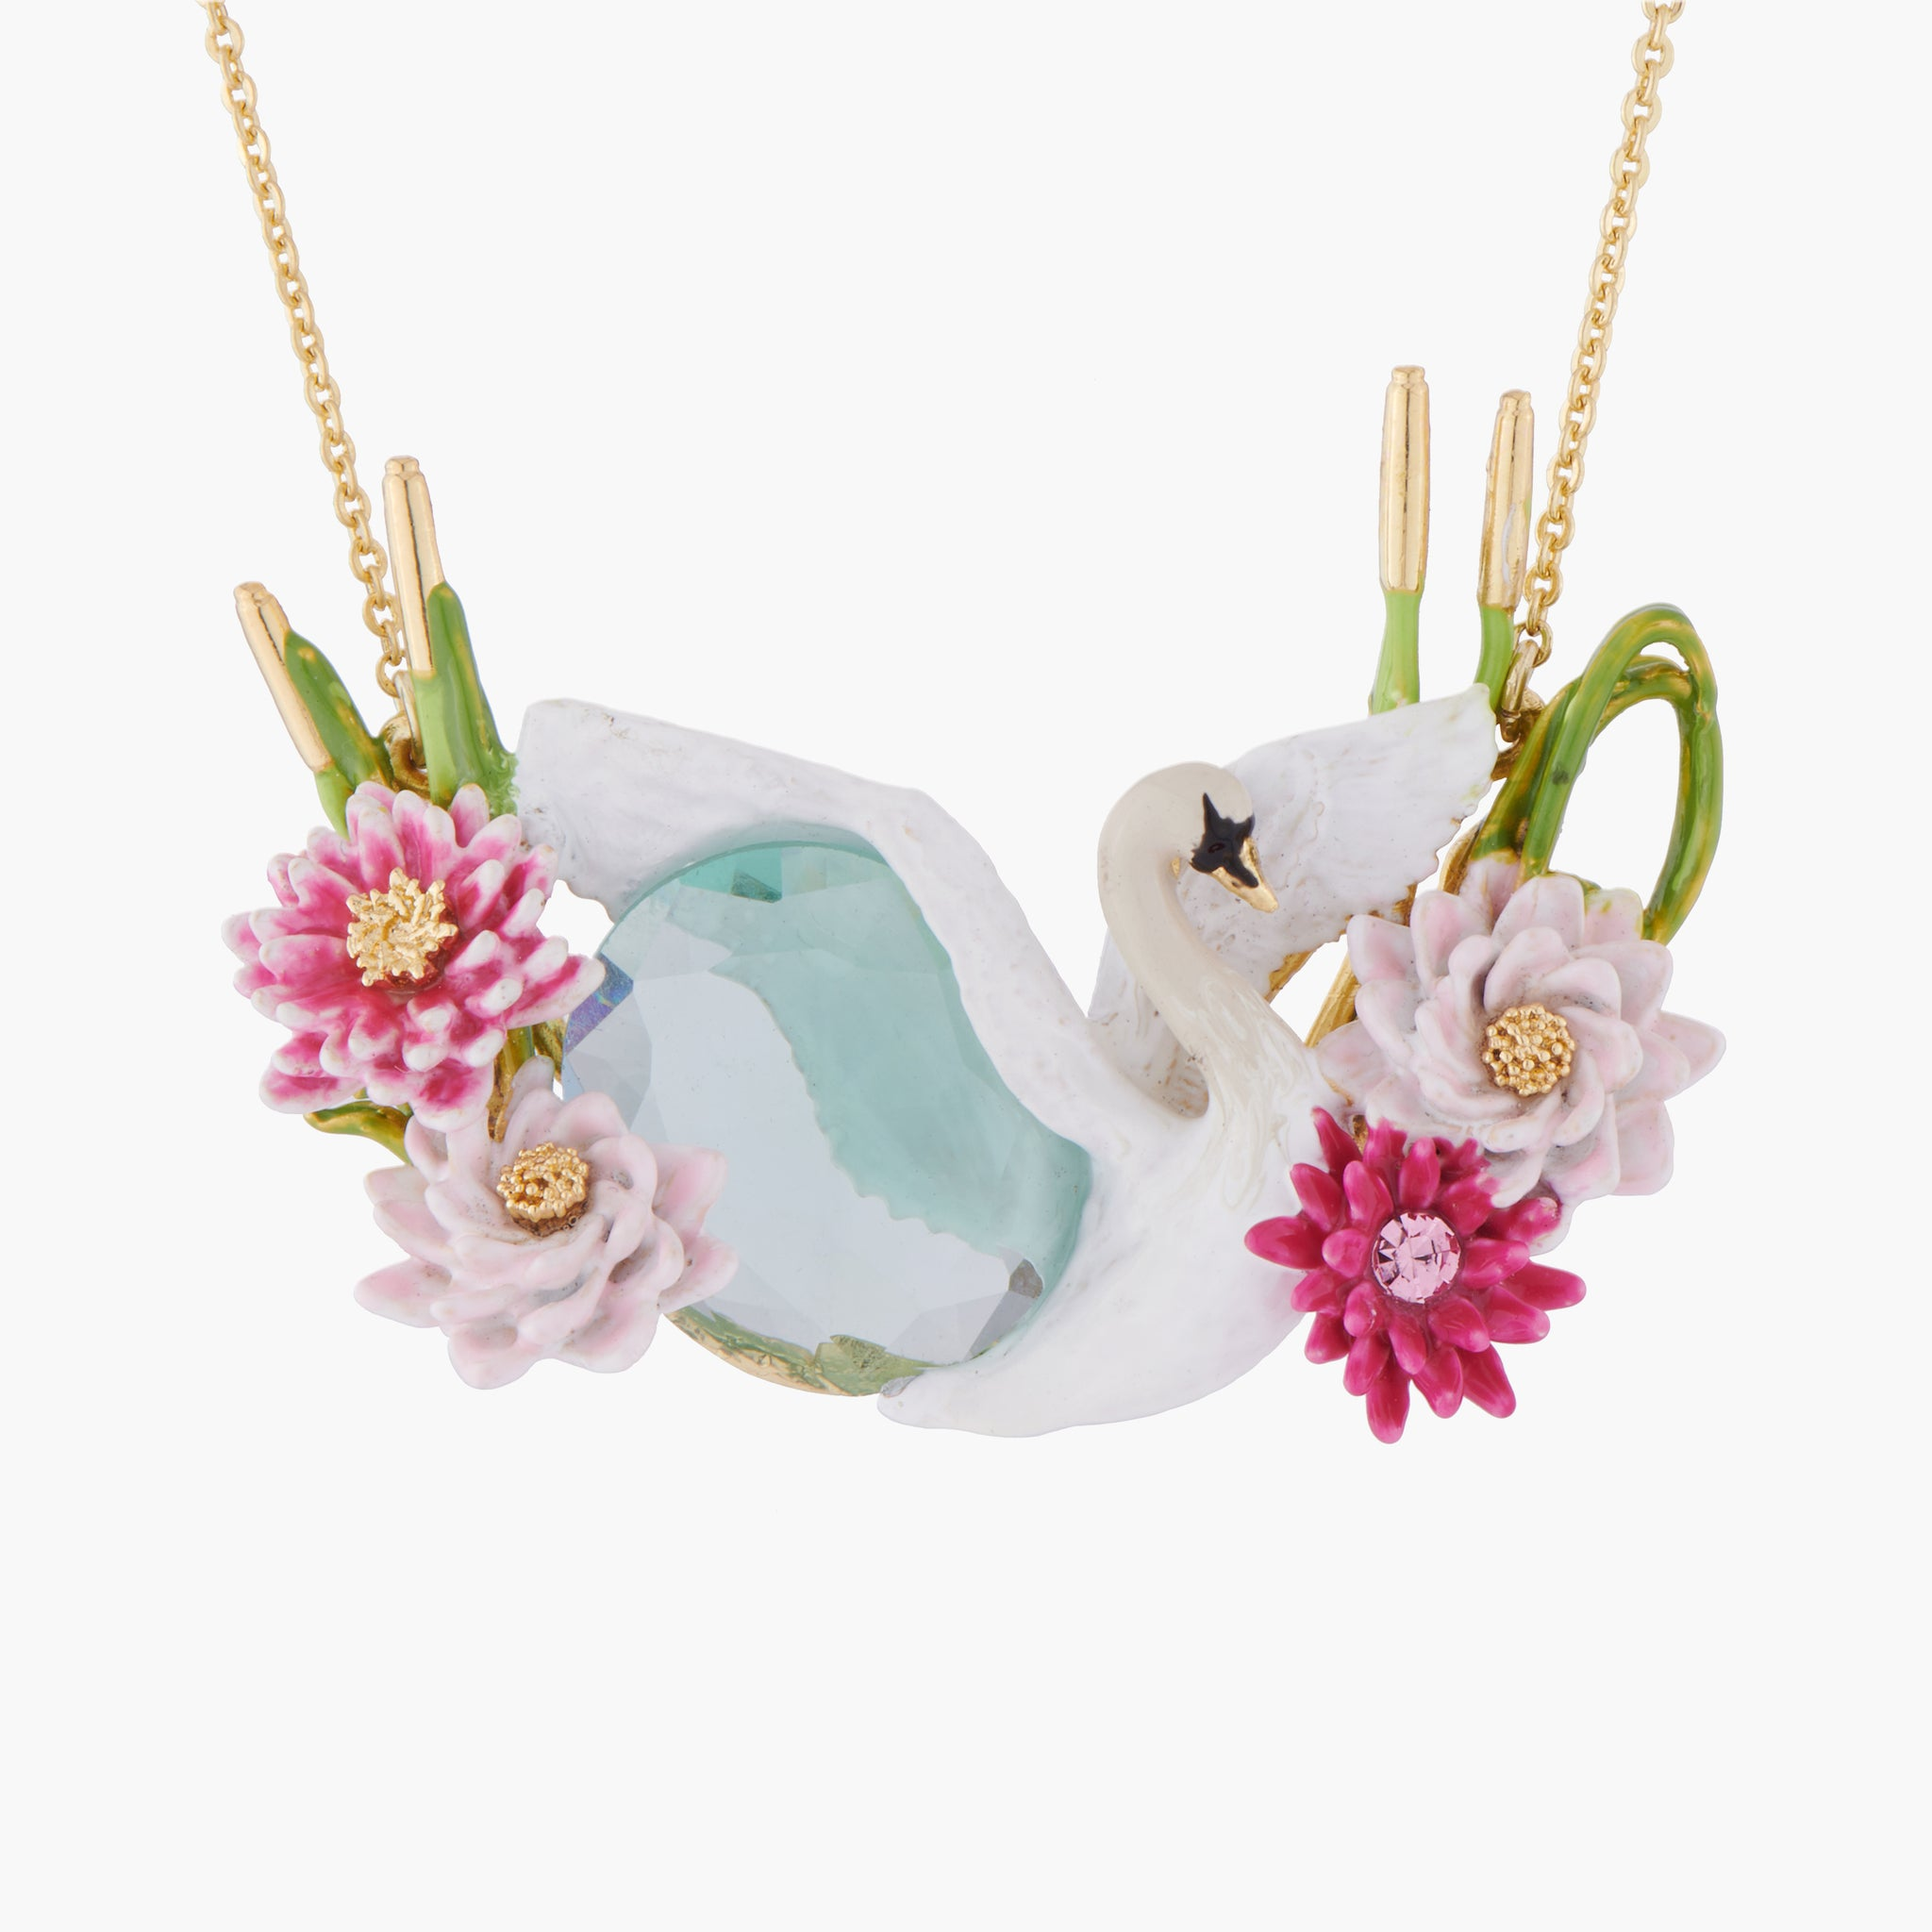 Flying Swan among Water Lilies on a Blue Stone Collar Necklace